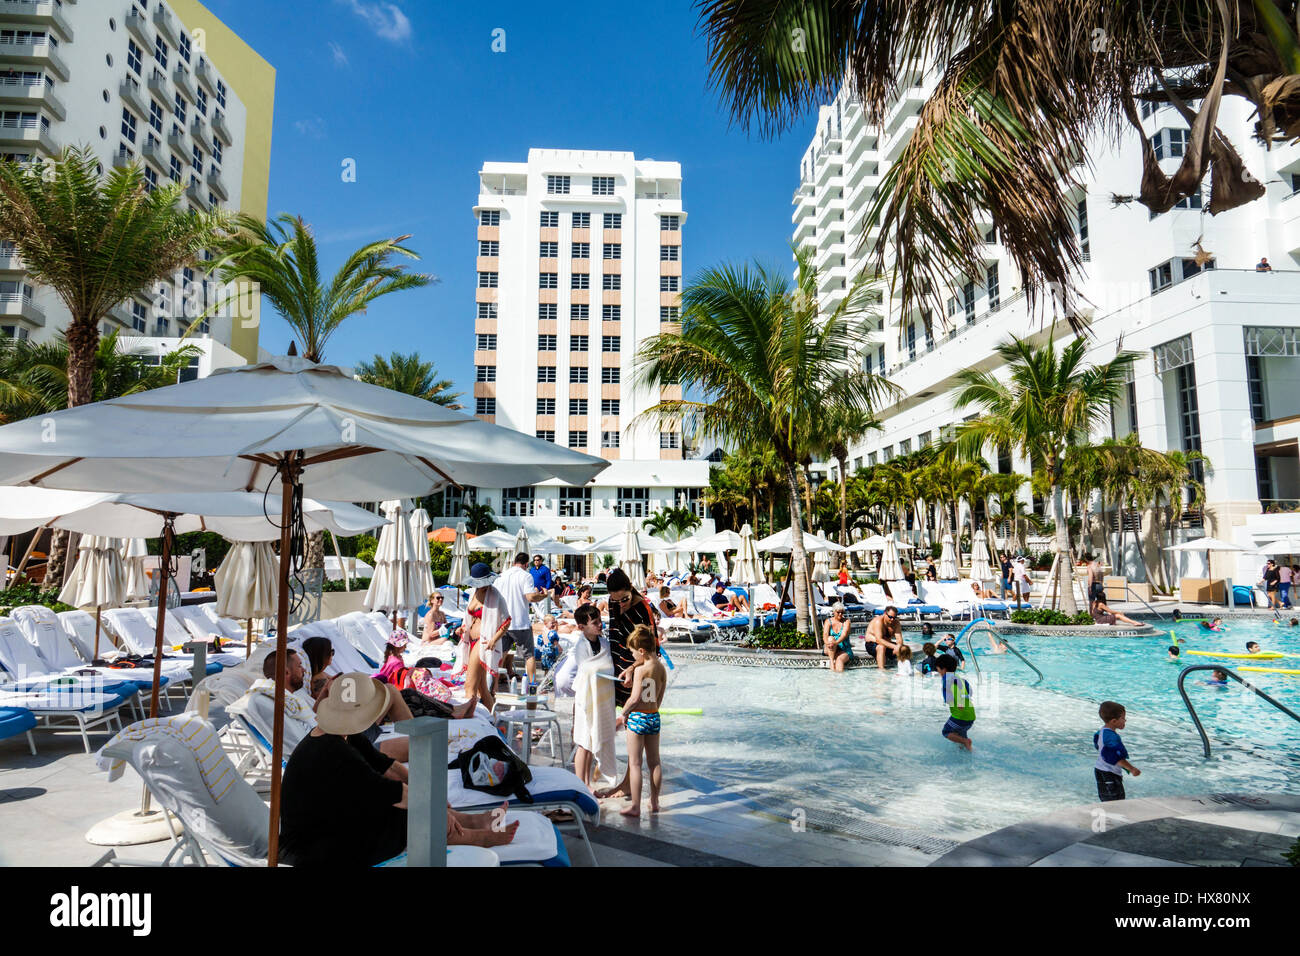 Hotels And Motels In Miami Beach Florida